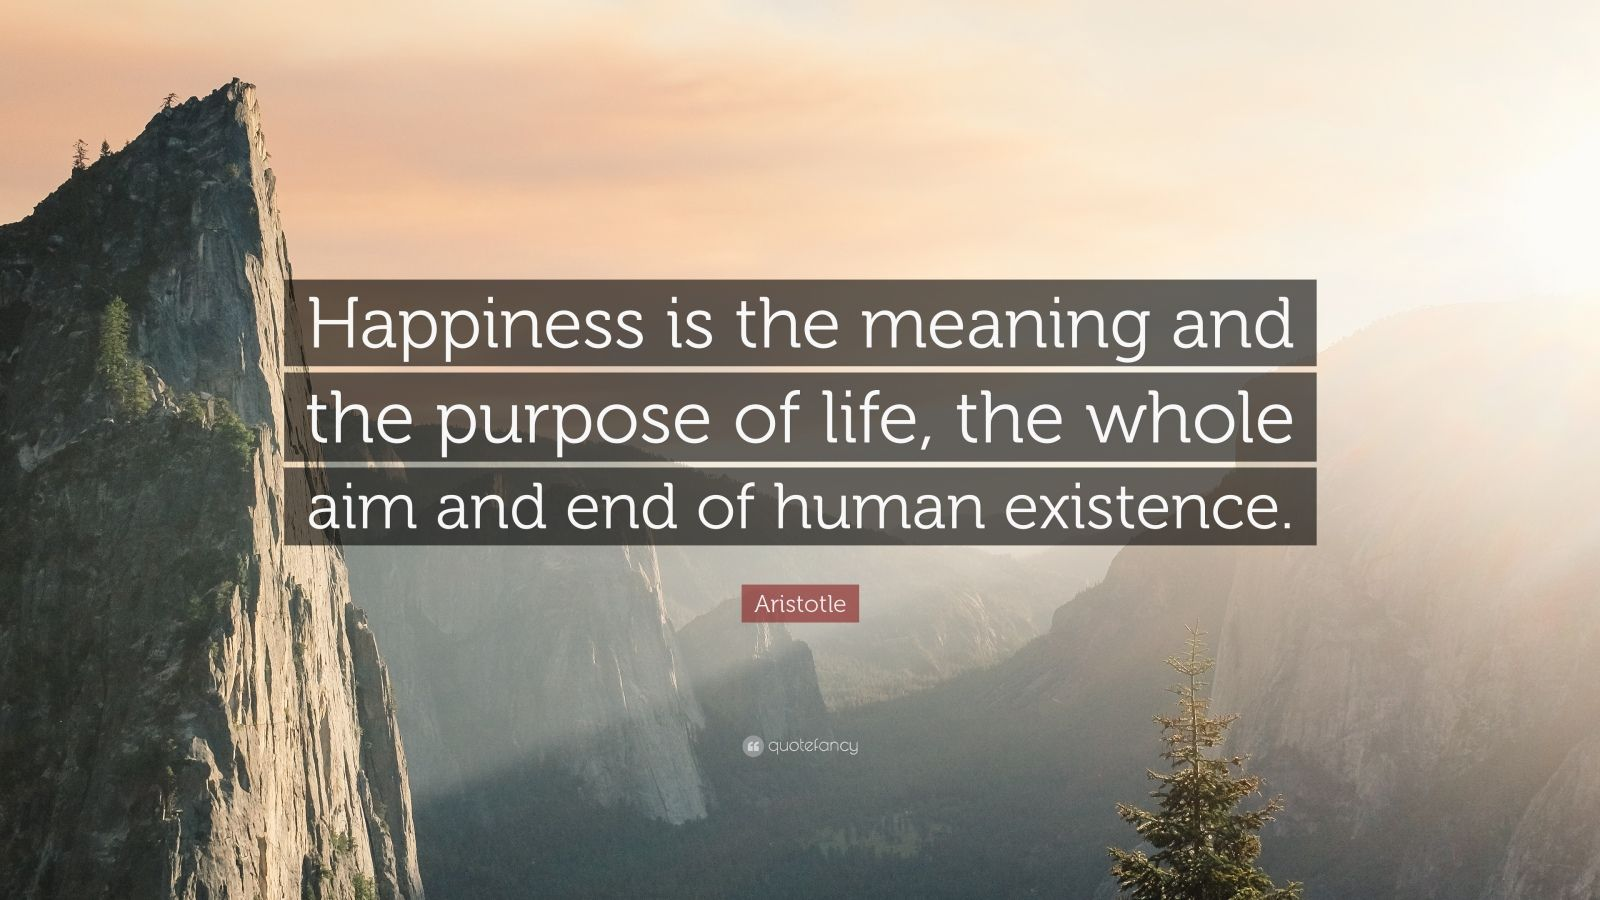 aristotle ethics of happiness philosophy essay An important project in the philosophy of happiness is simply getting clear on what an essay on the application of happiness, and ethics.